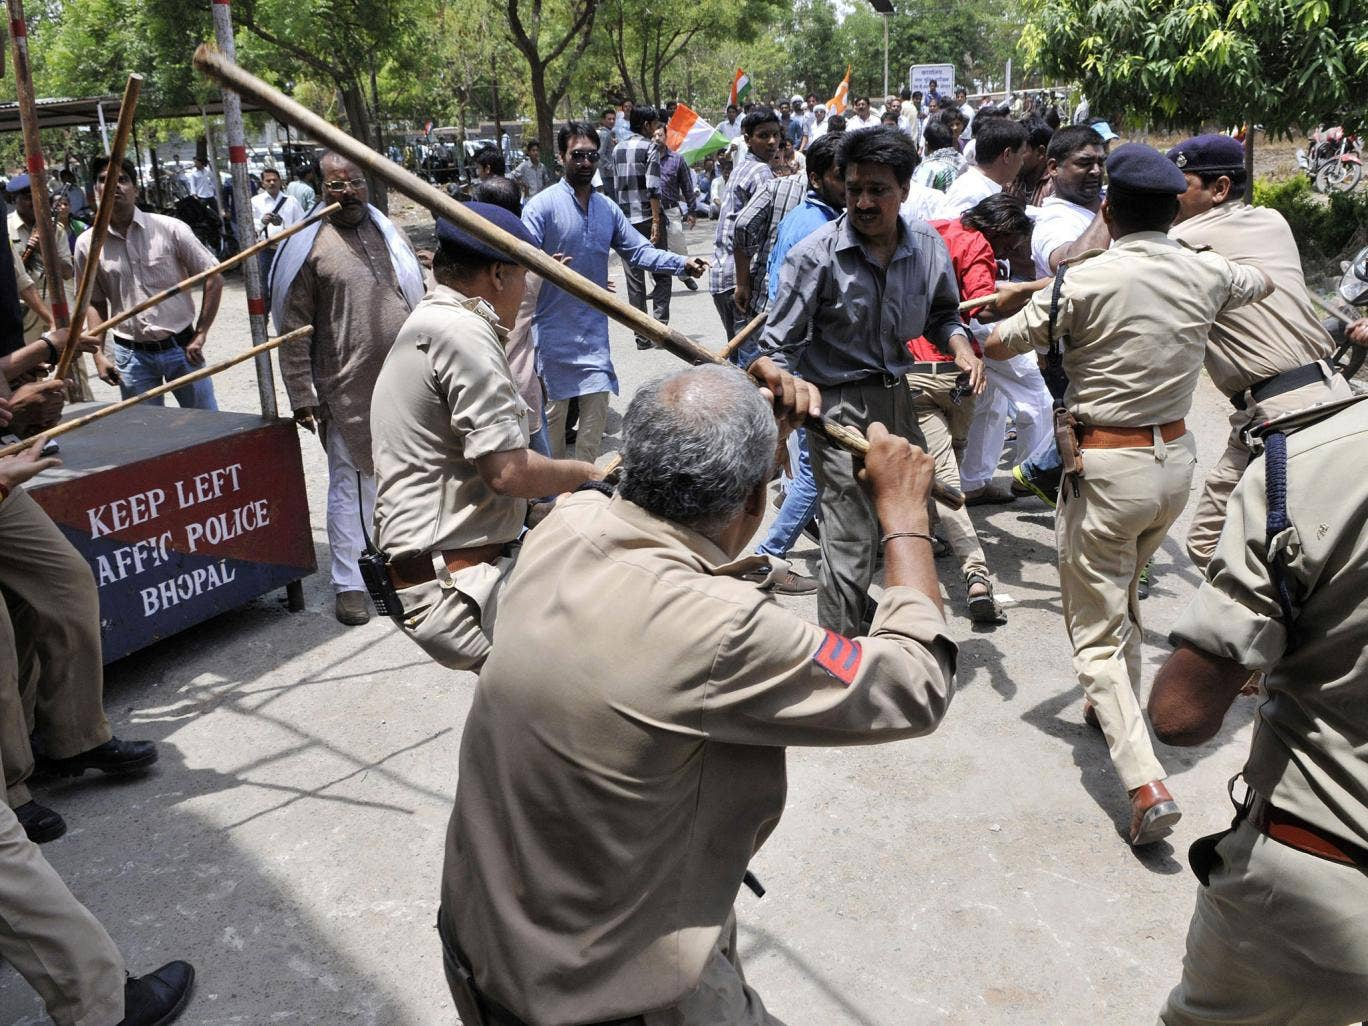 Congress party workers clash with police at a protest after the rebel attack